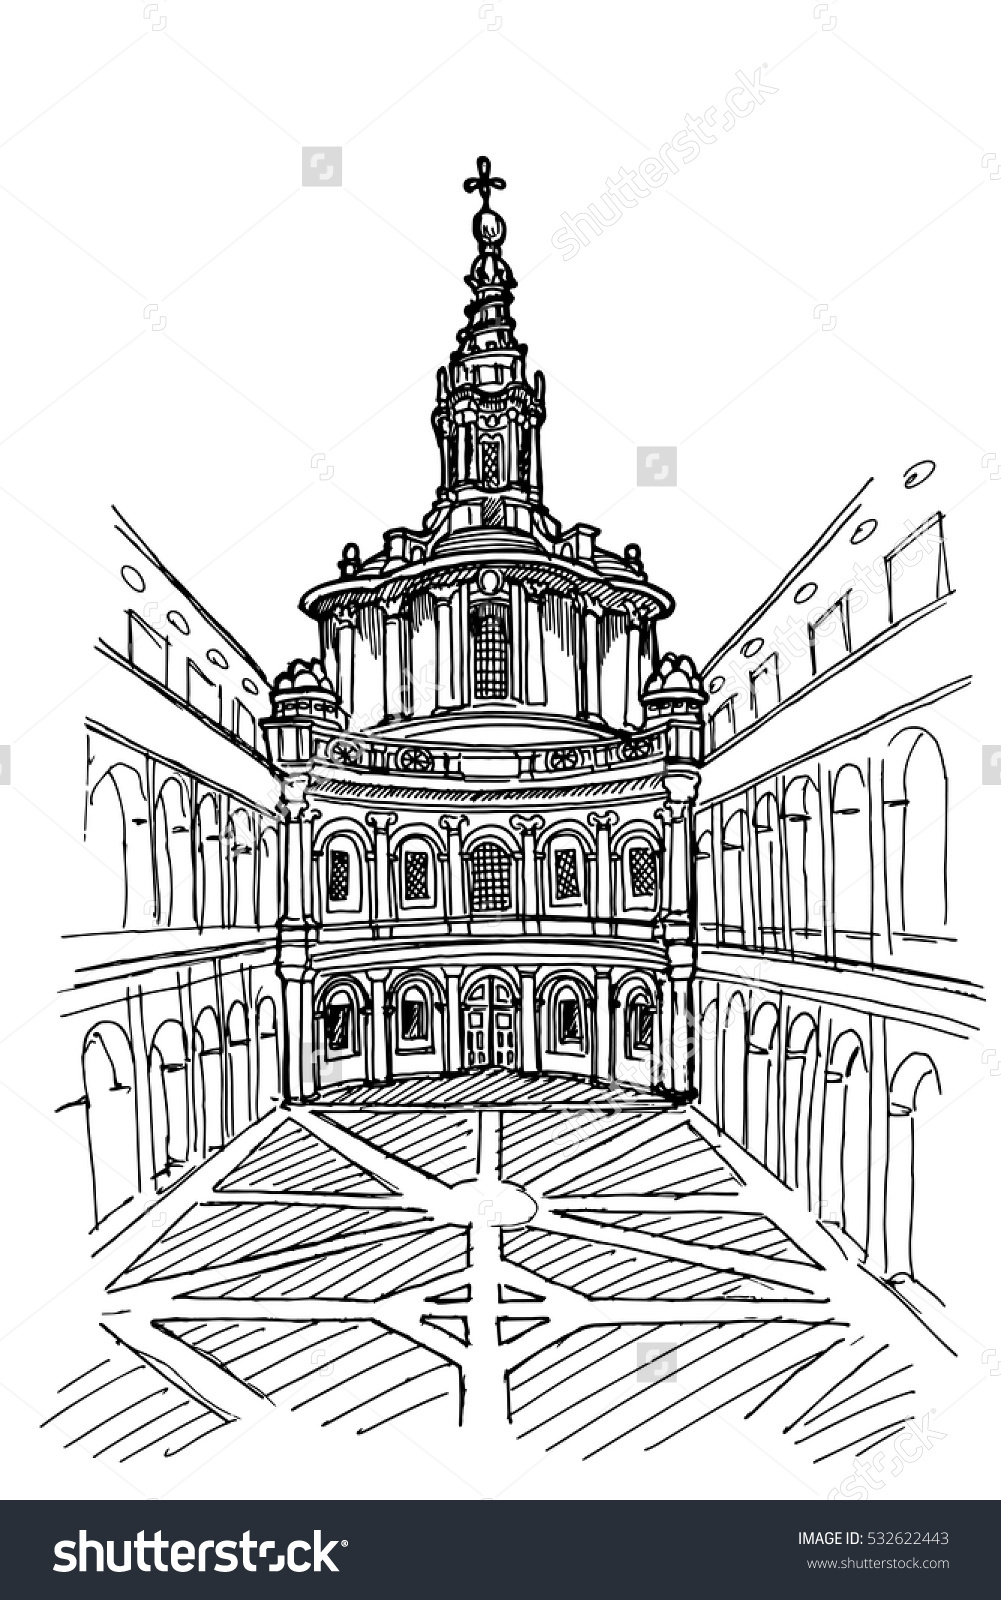 Vector Sketch Saint Yves La Sapienza Stock Vector 532622443.